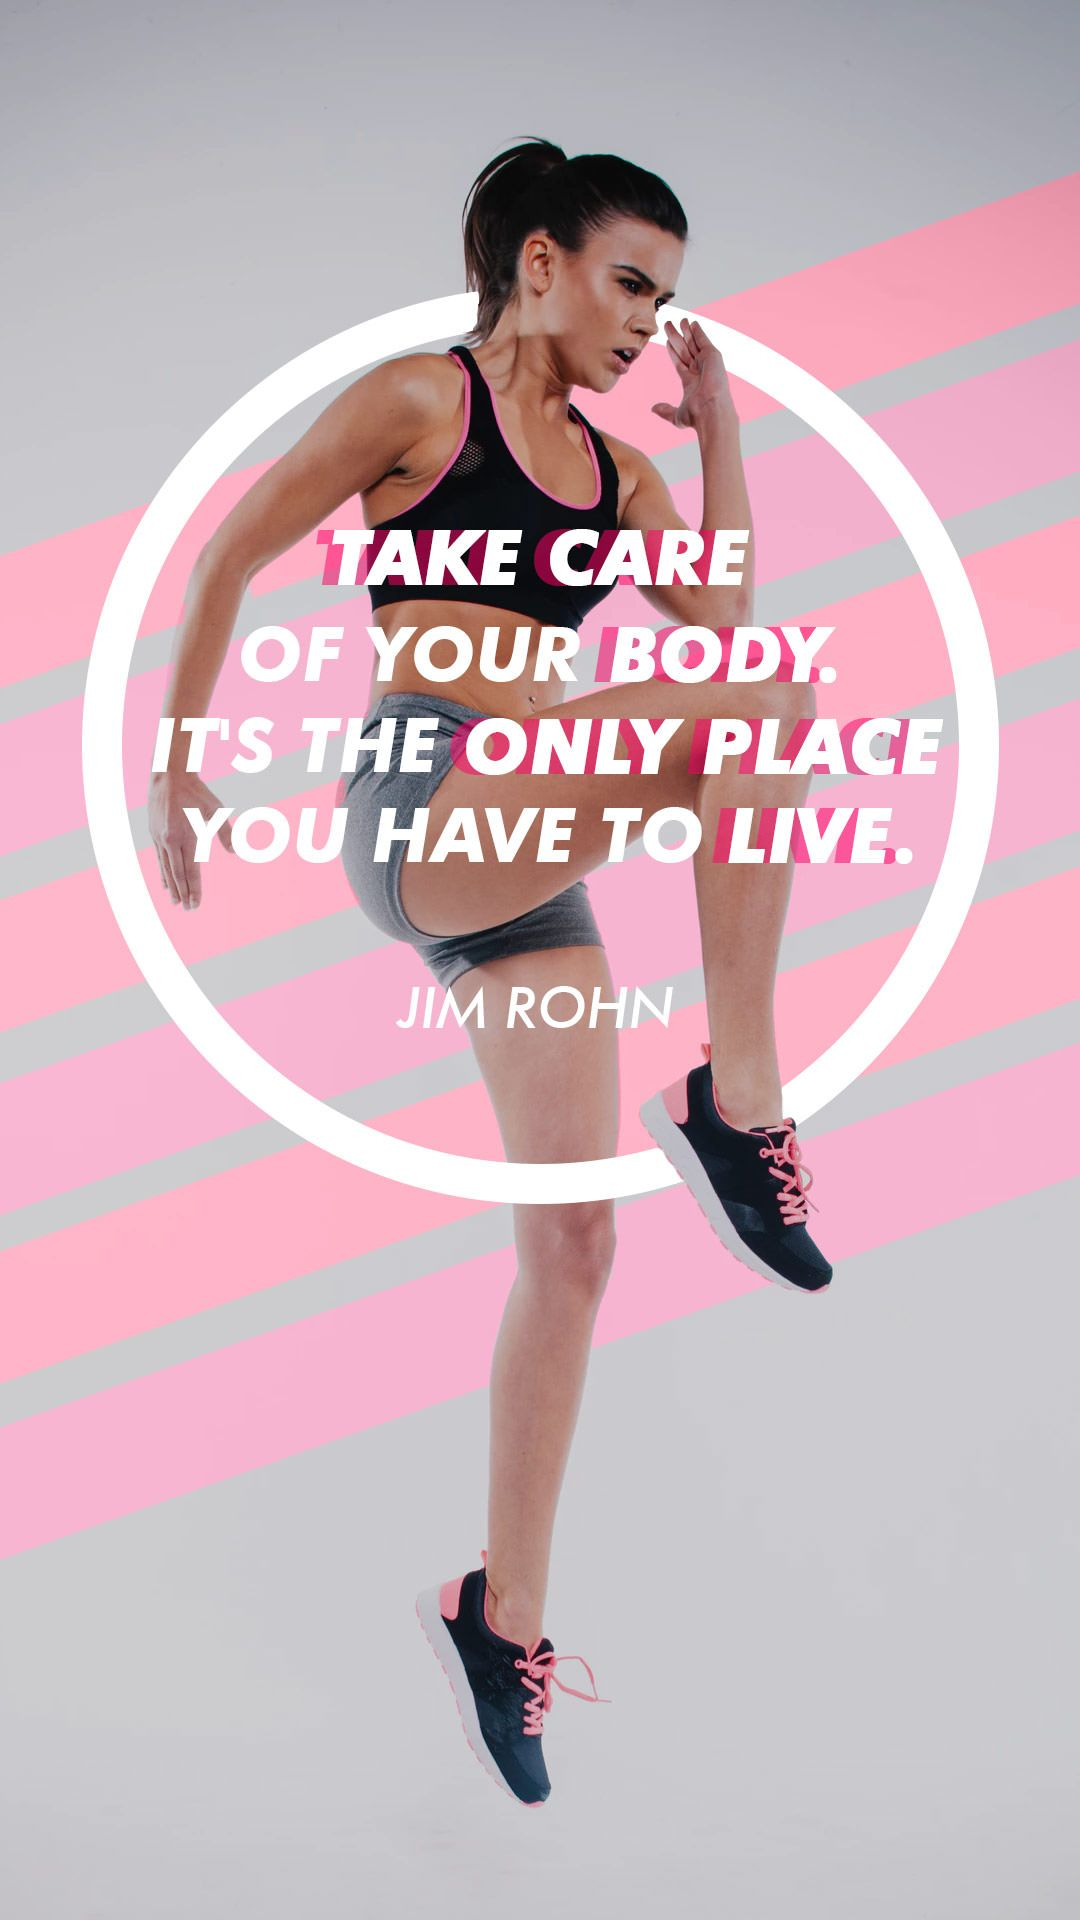 """Take care of your body, it's the only place you have to live."" -Jim Rohn #fitness #motivationalquot..."